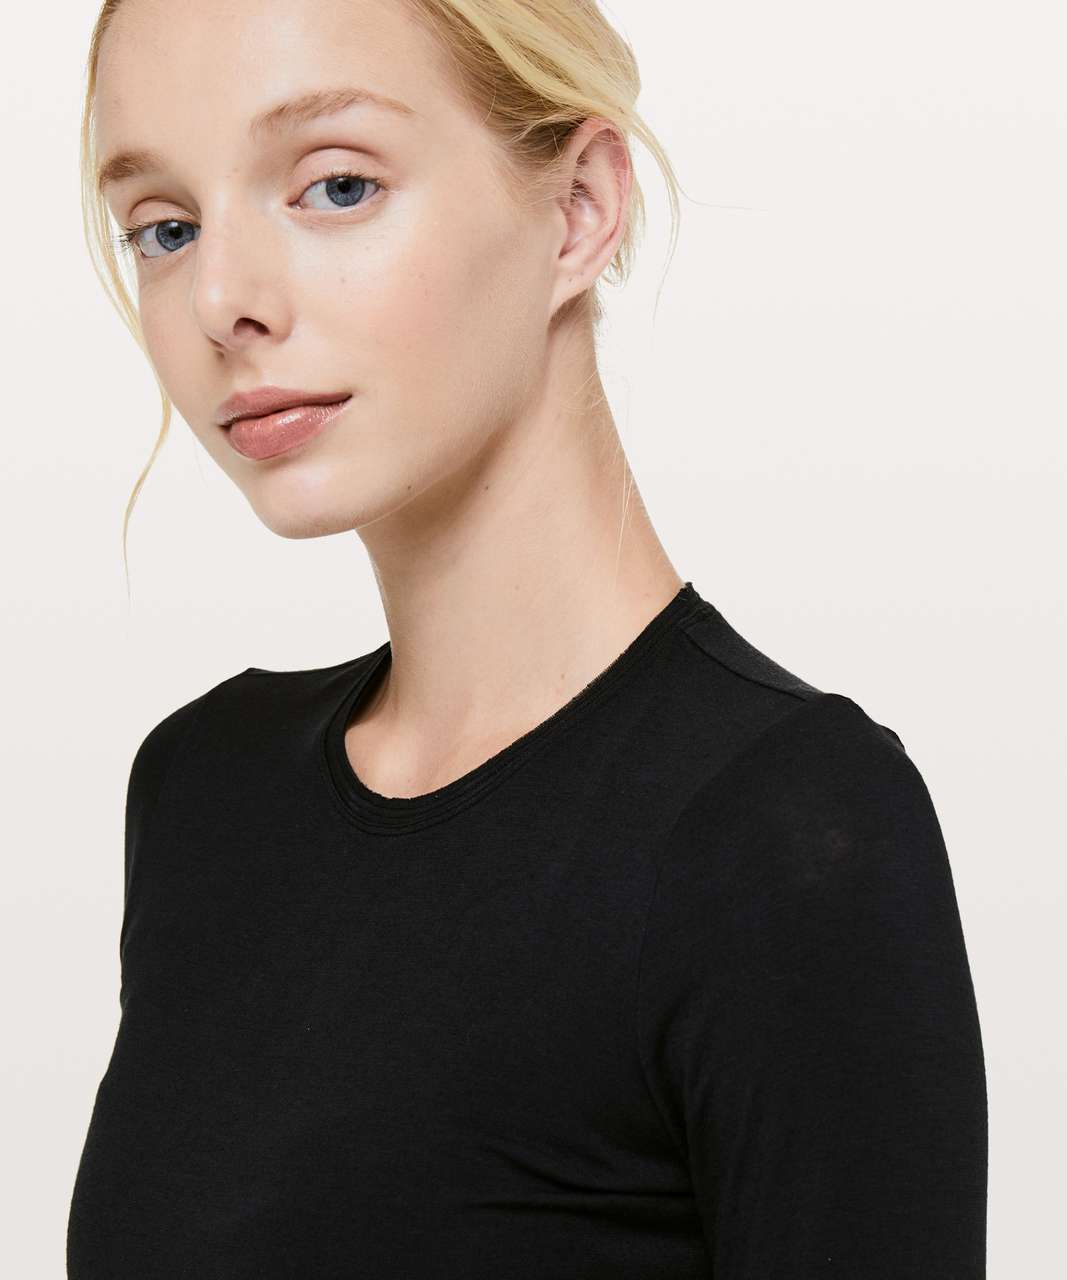 Lululemon Principal Dancer Long Sleeve - Black